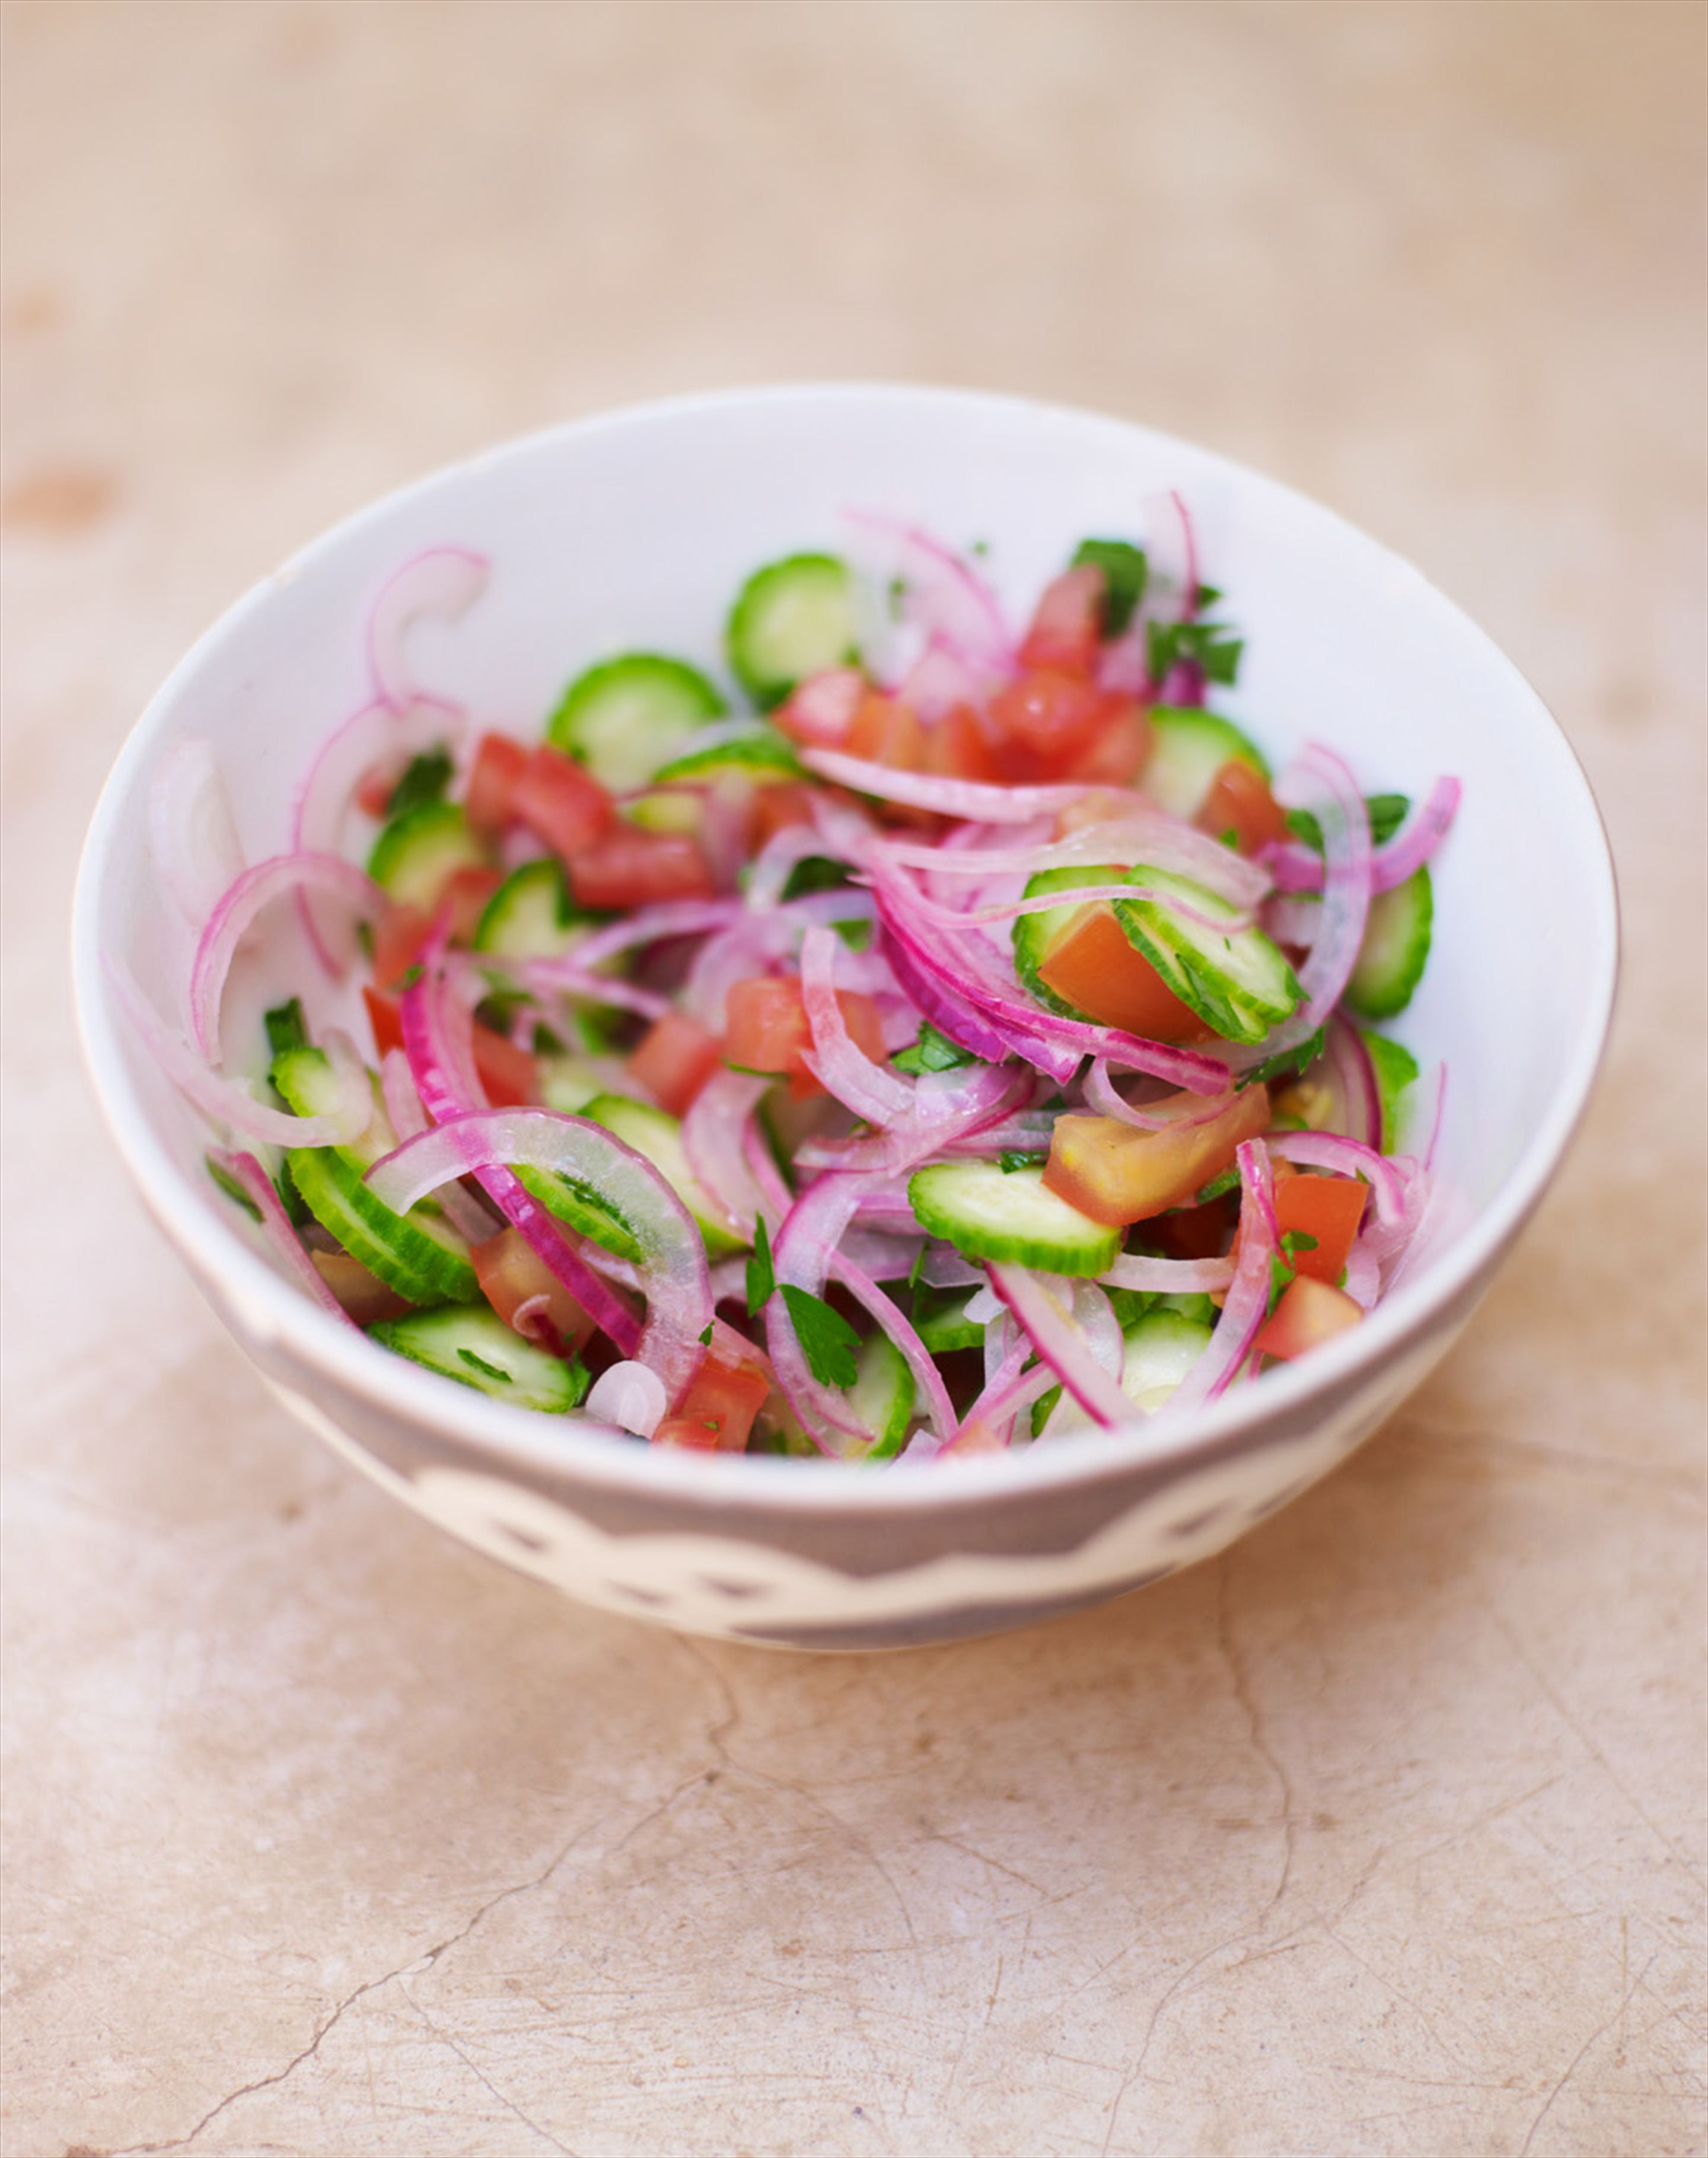 Chopped tomato & cucumber salad